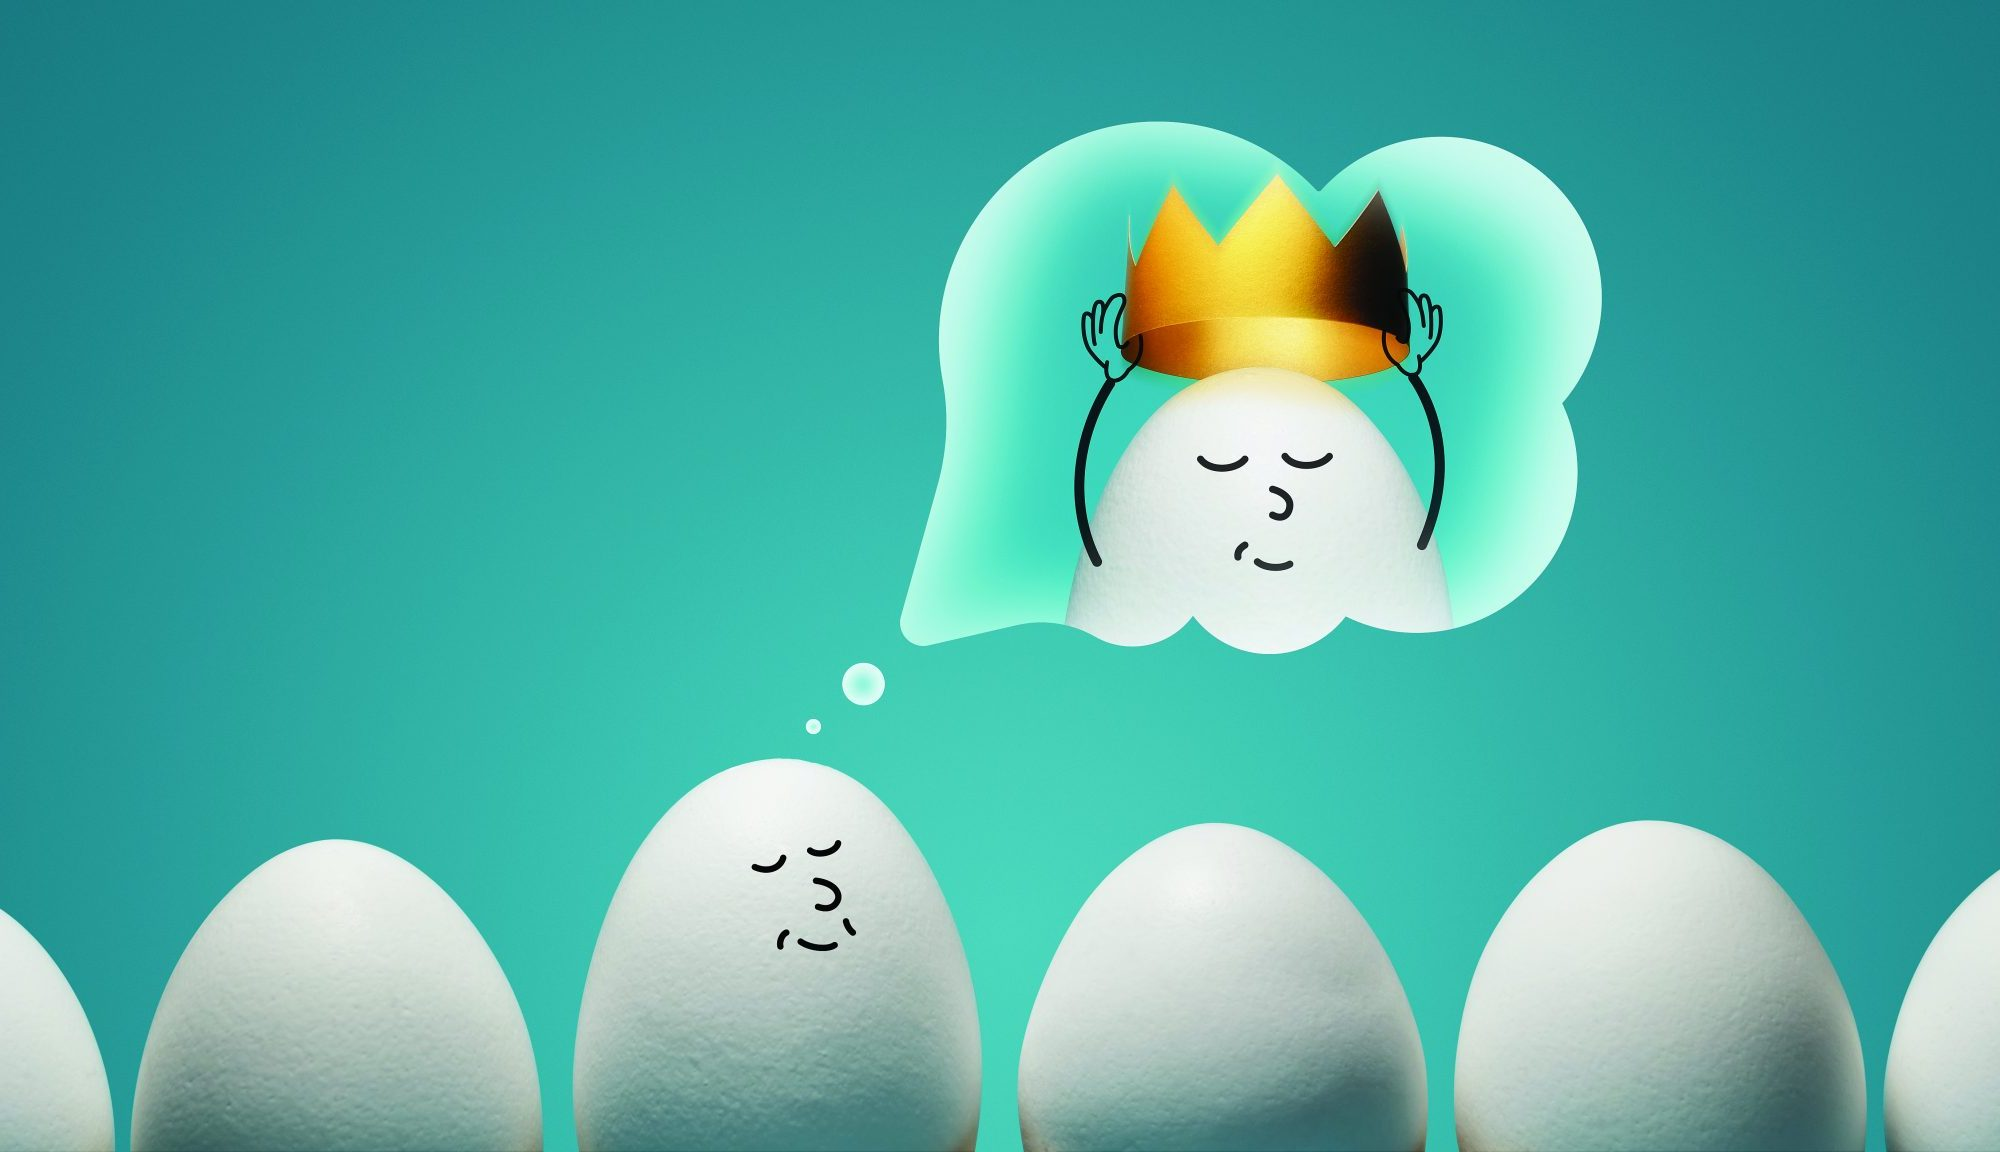 A line of eggs, and one egg is daydreaming to be king. This is symbolic to dreaming big, overconfidence and arrogance.